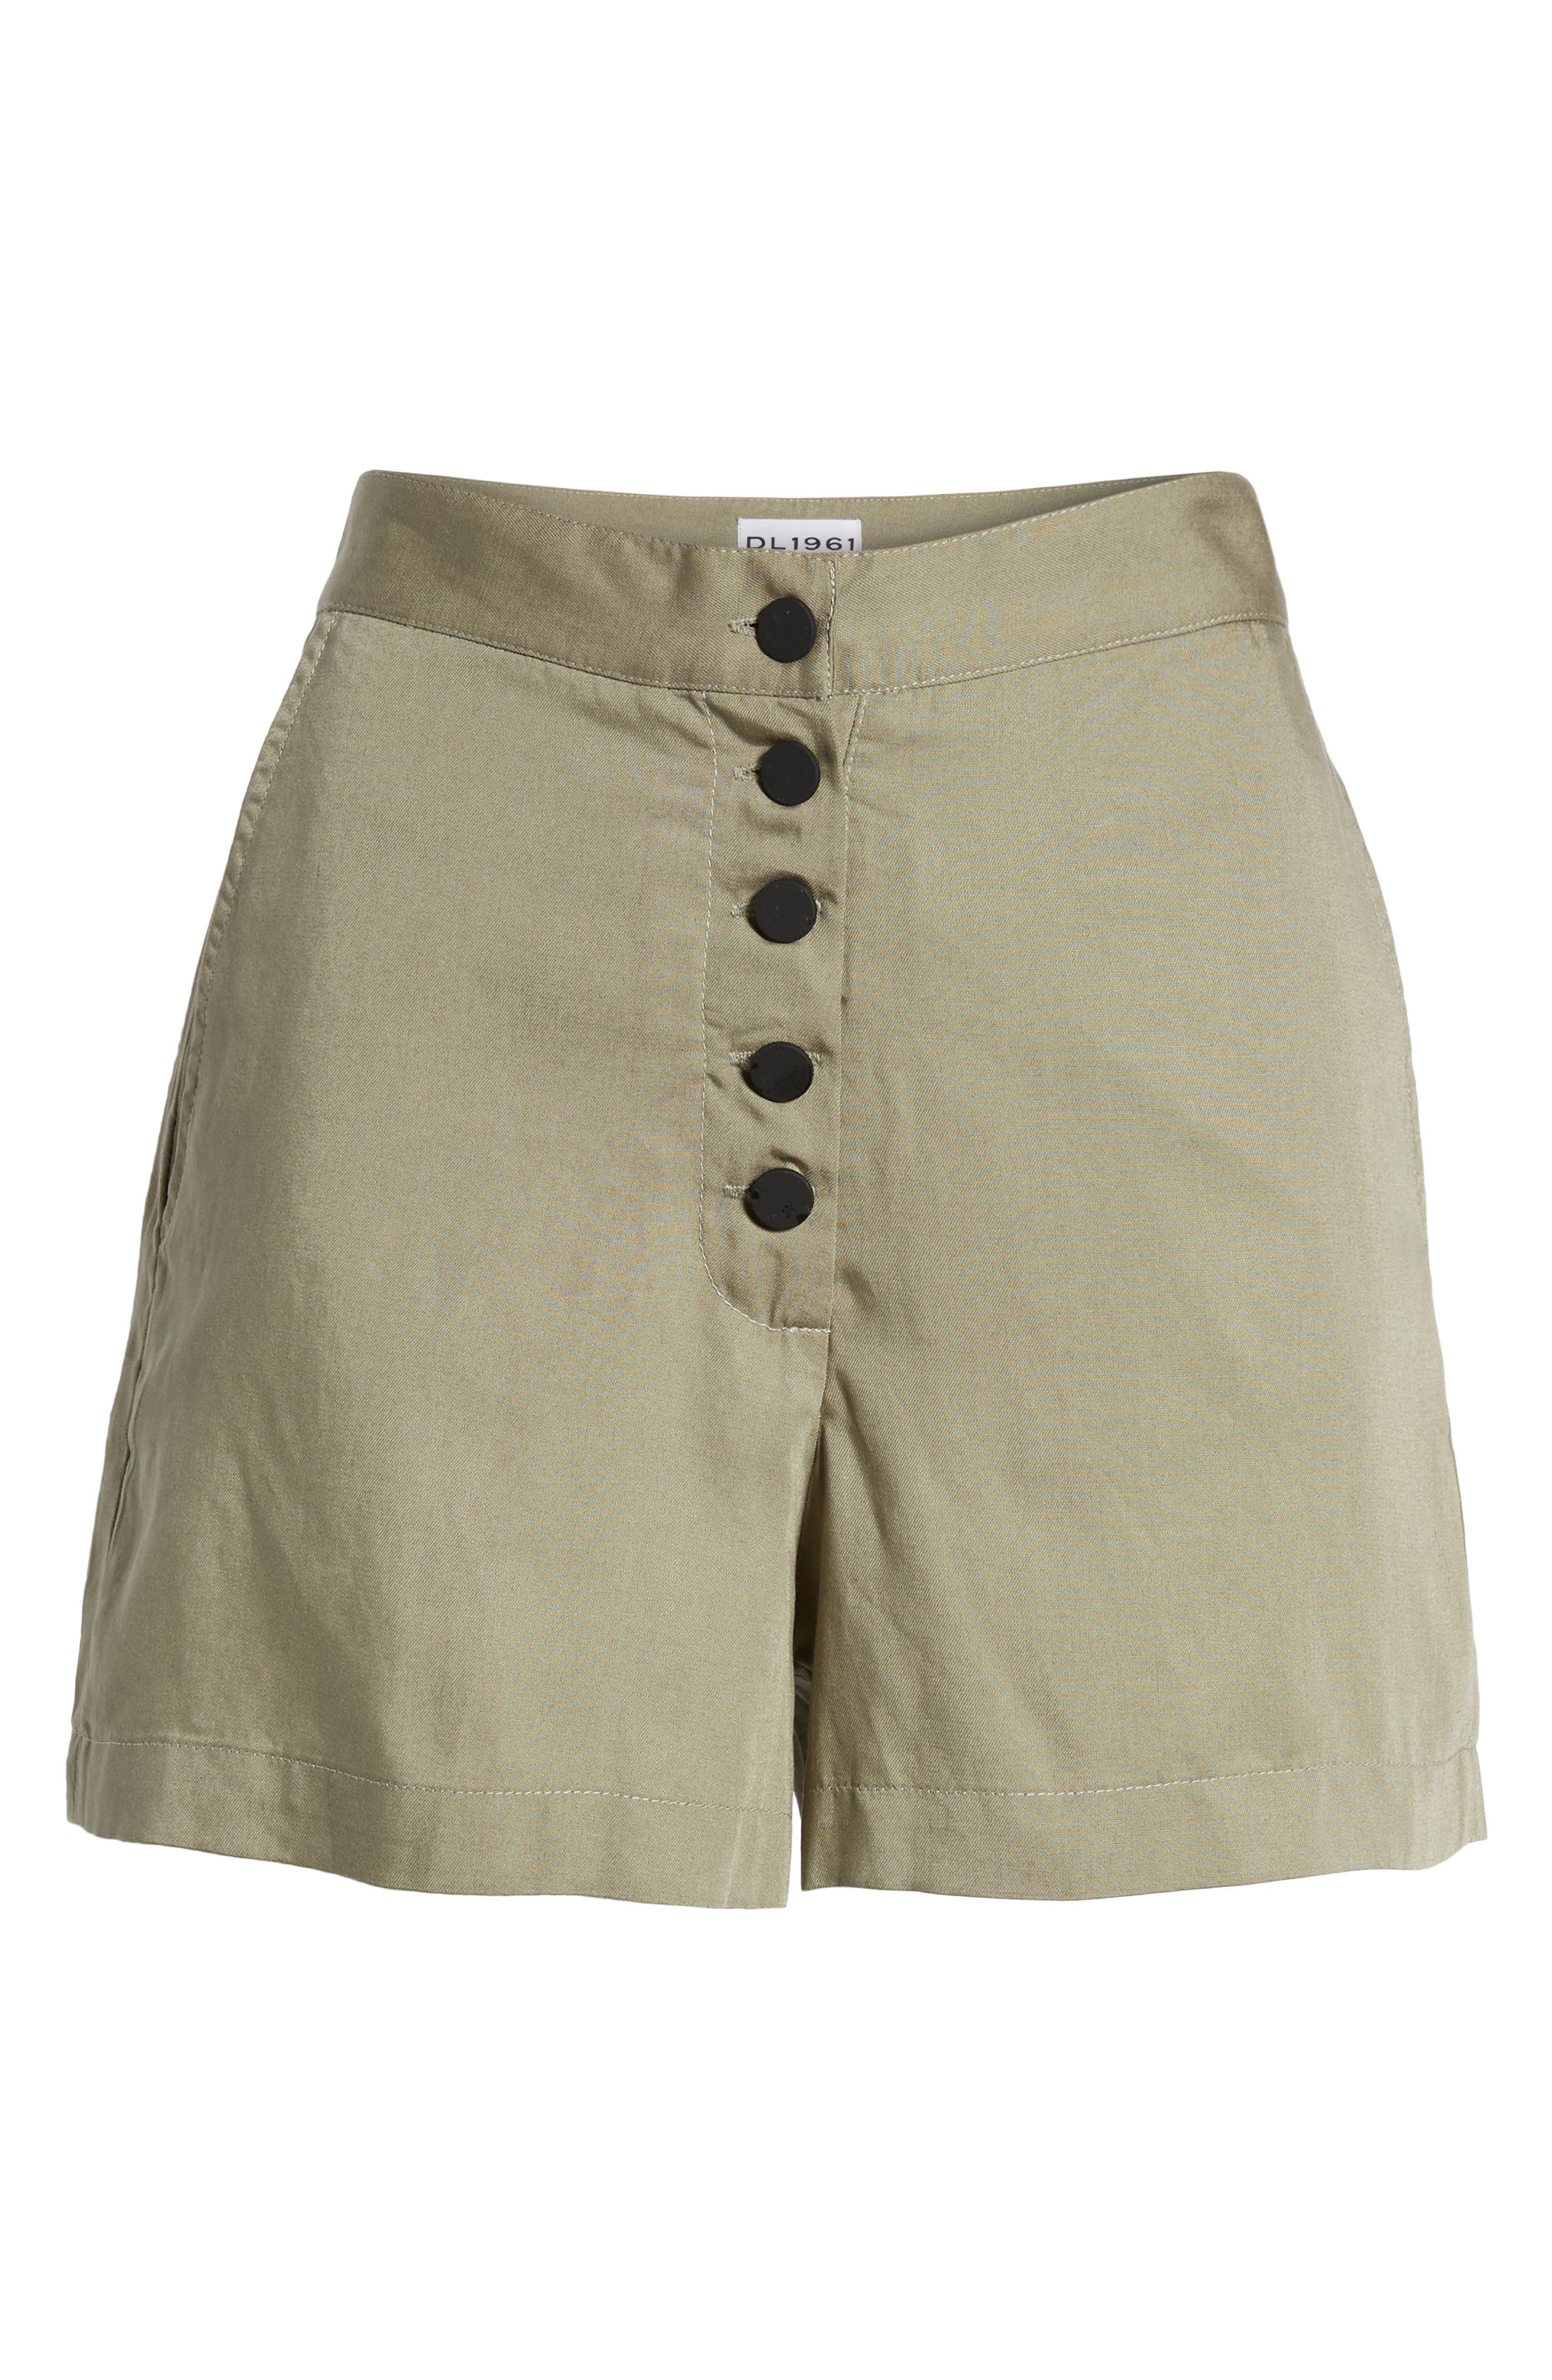 High Waist Shorts,                             Alternate thumbnail 6, color,                             SEA GRASS